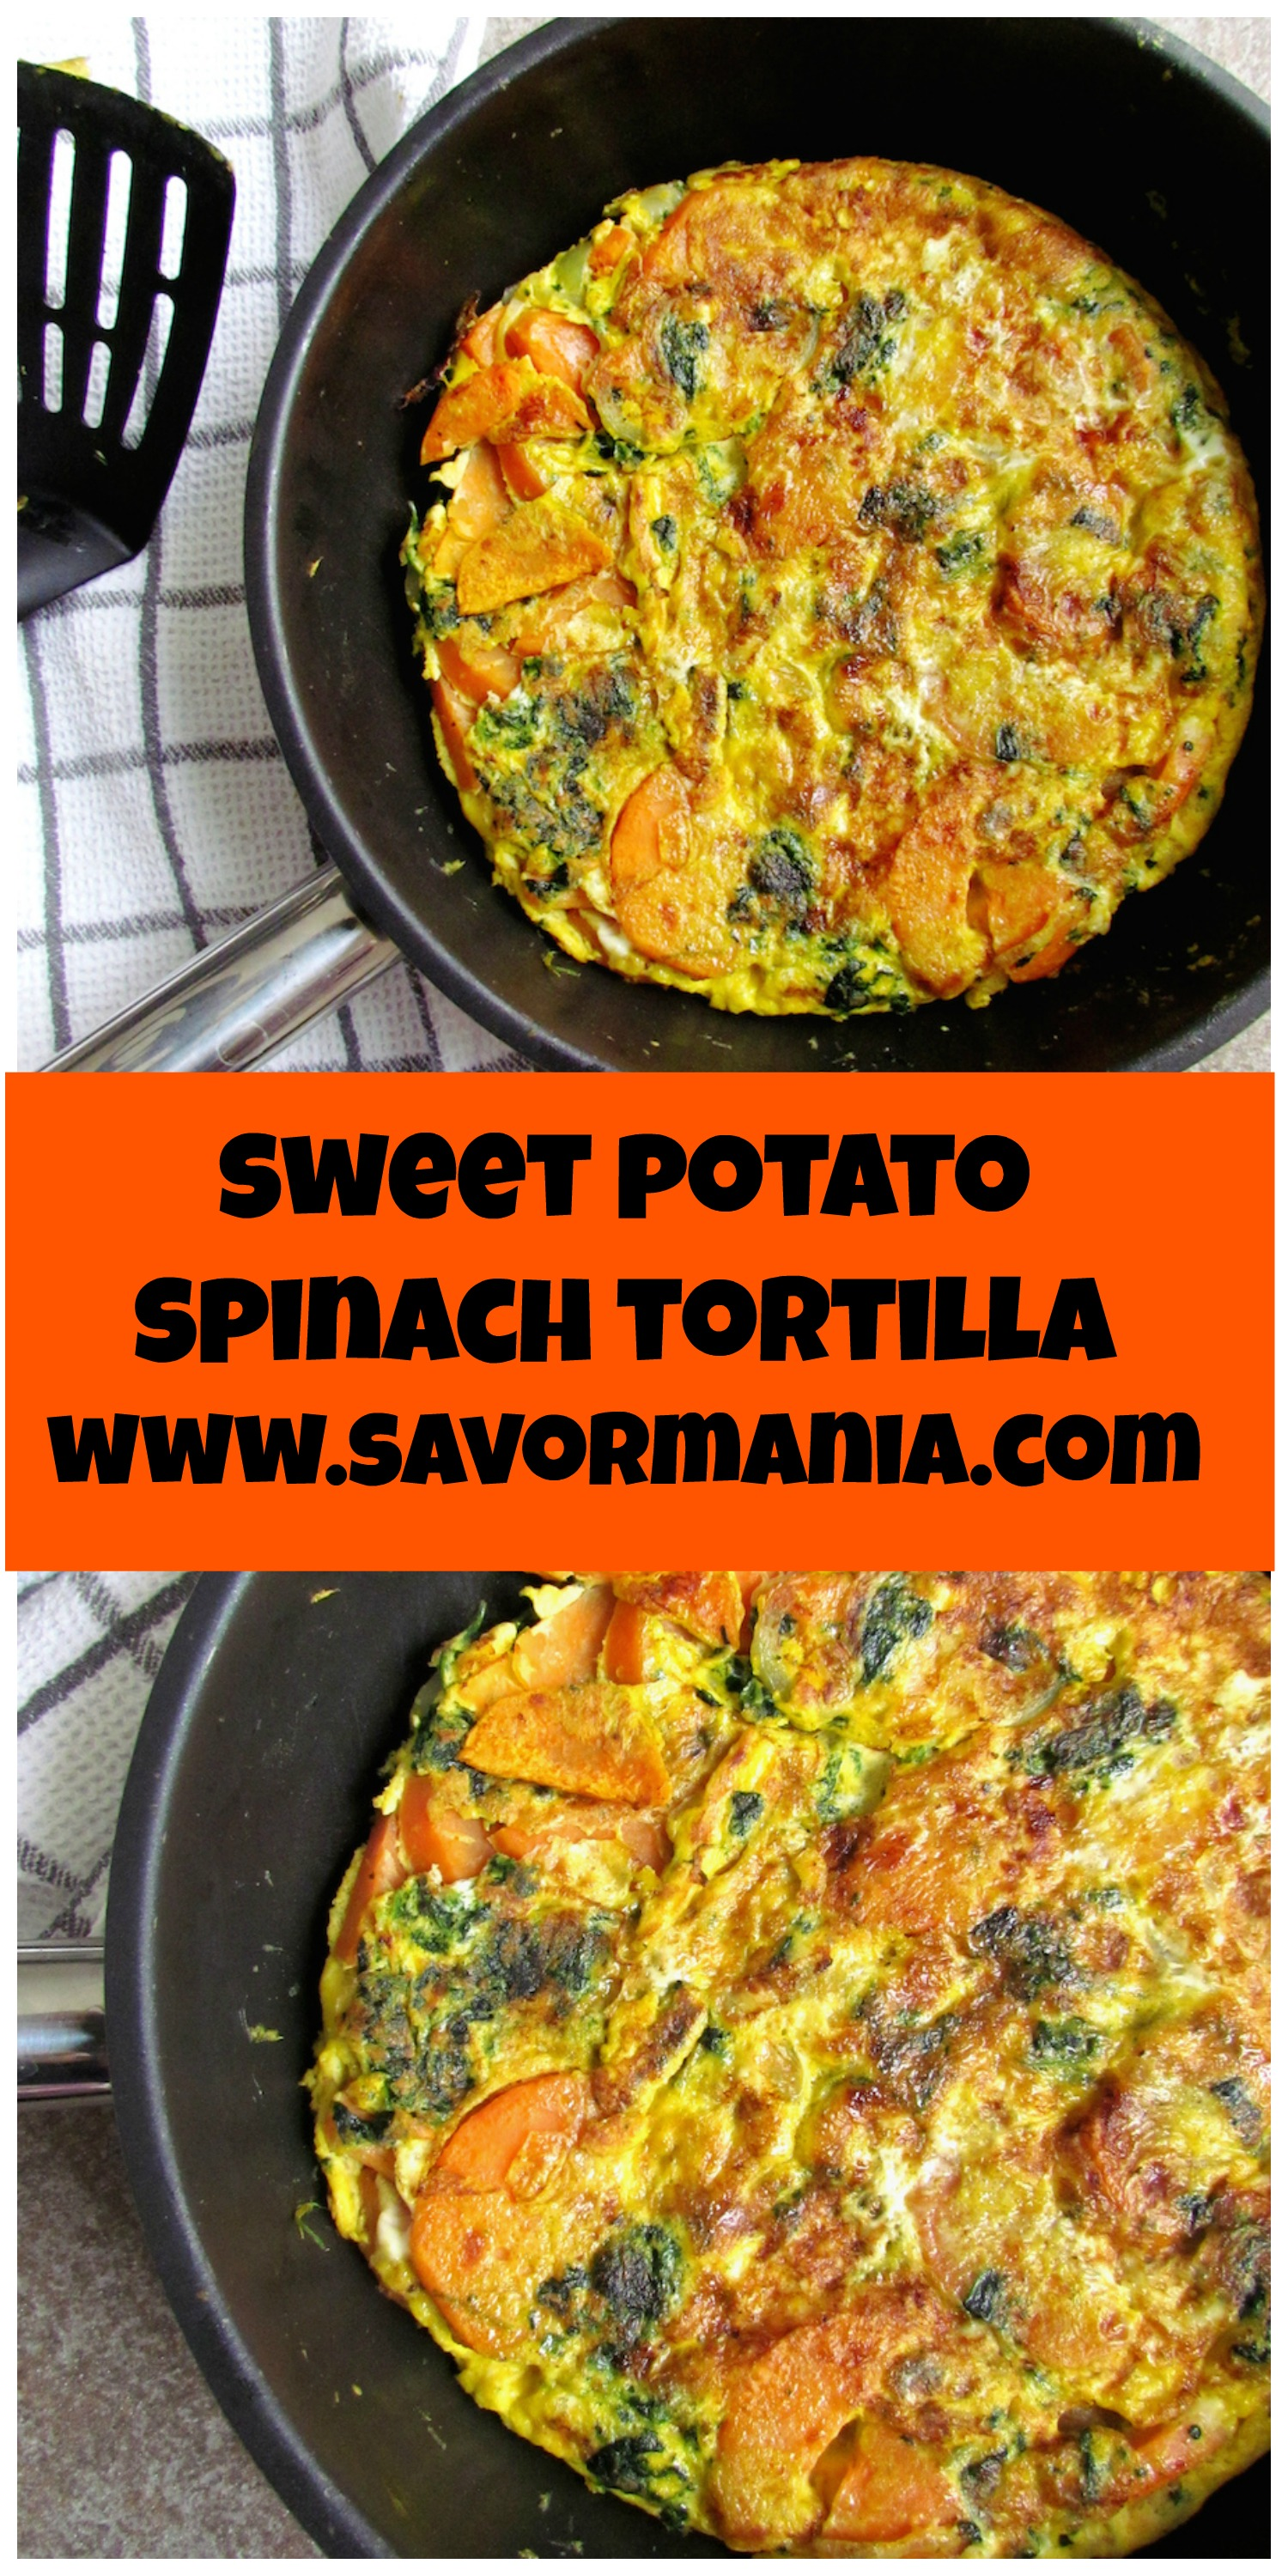 sweet potato and spinach tortilla | Savormania